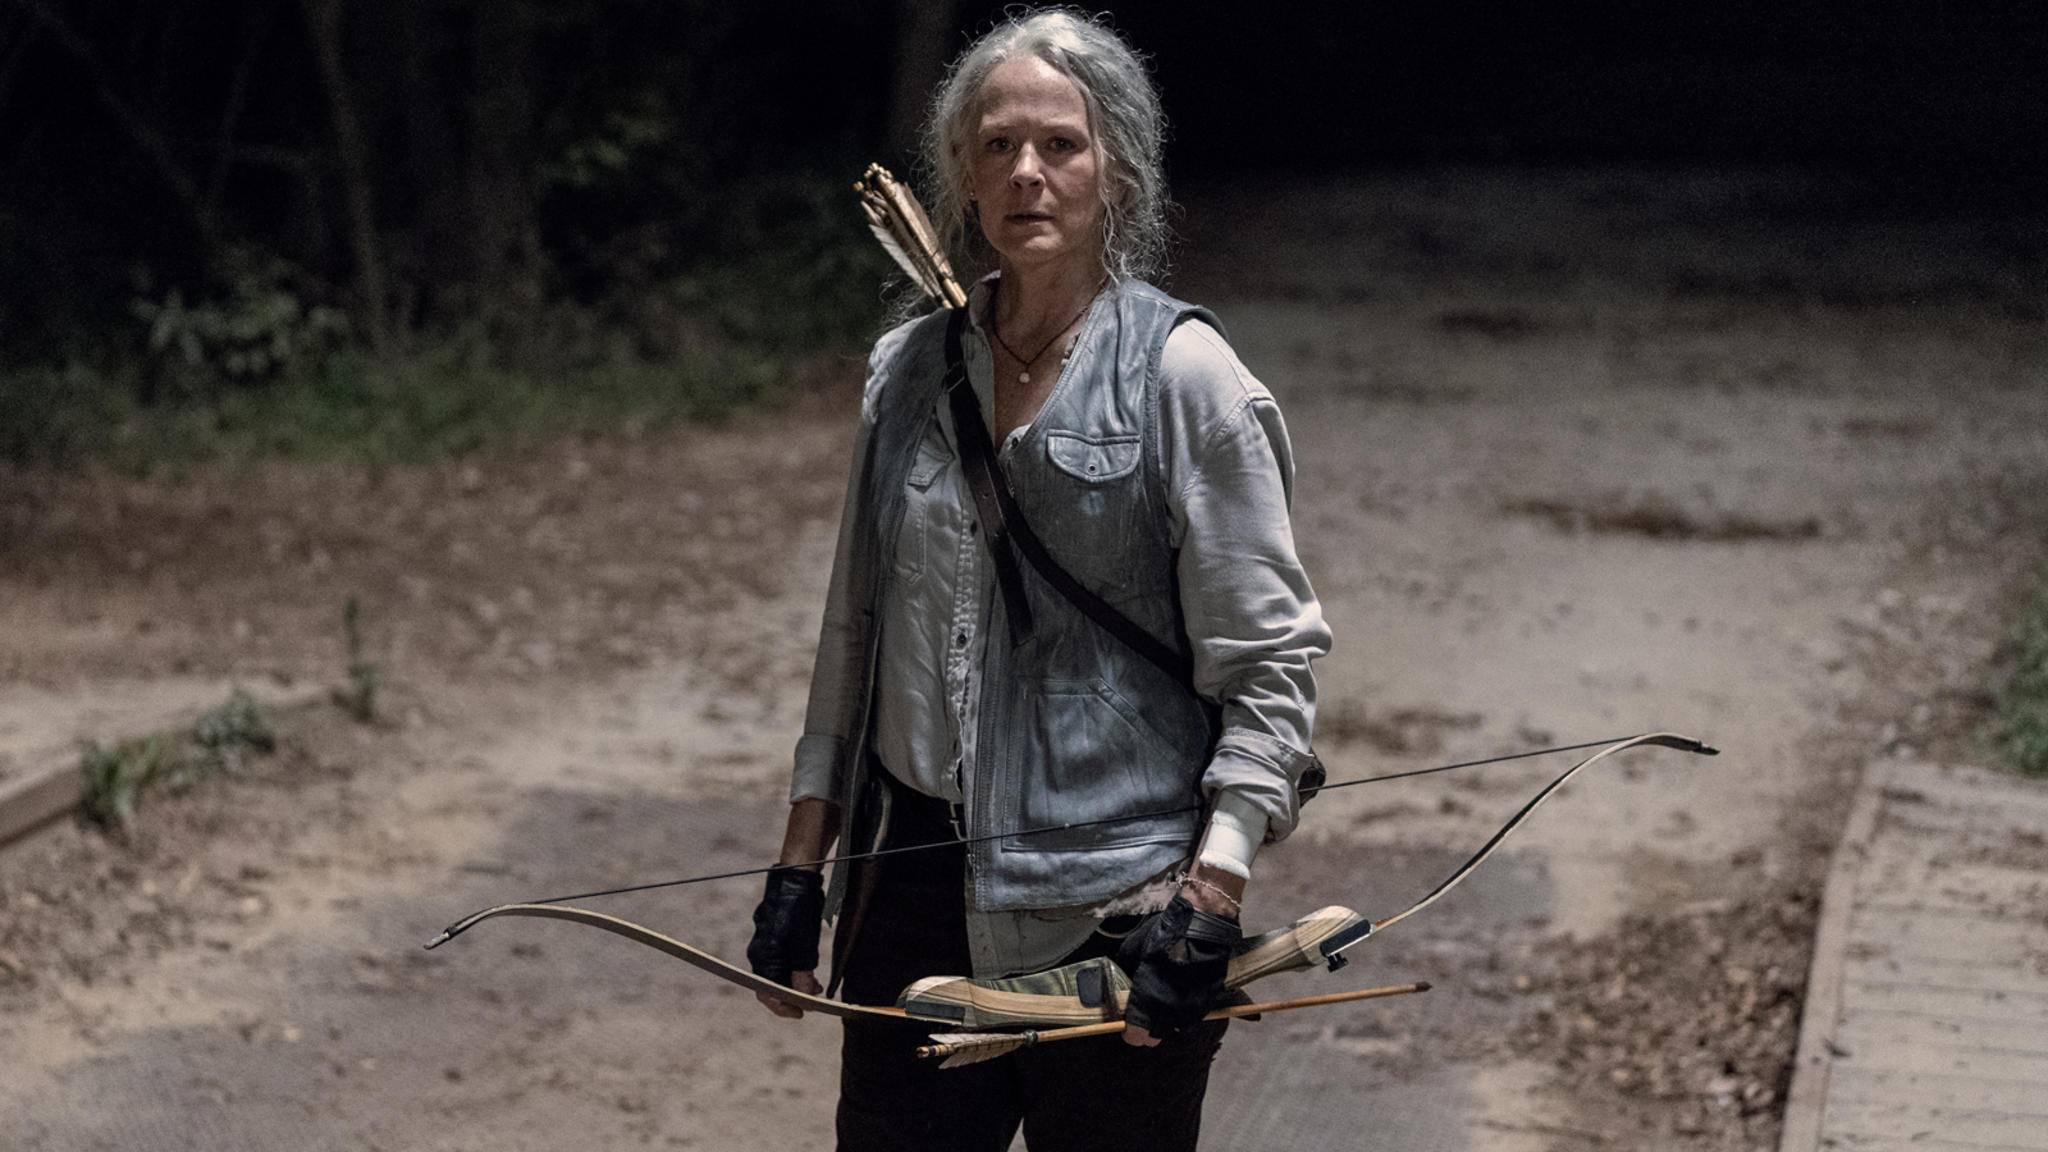 The Walking Dead-S10E07-Carol-Jace Downs-AMC-2